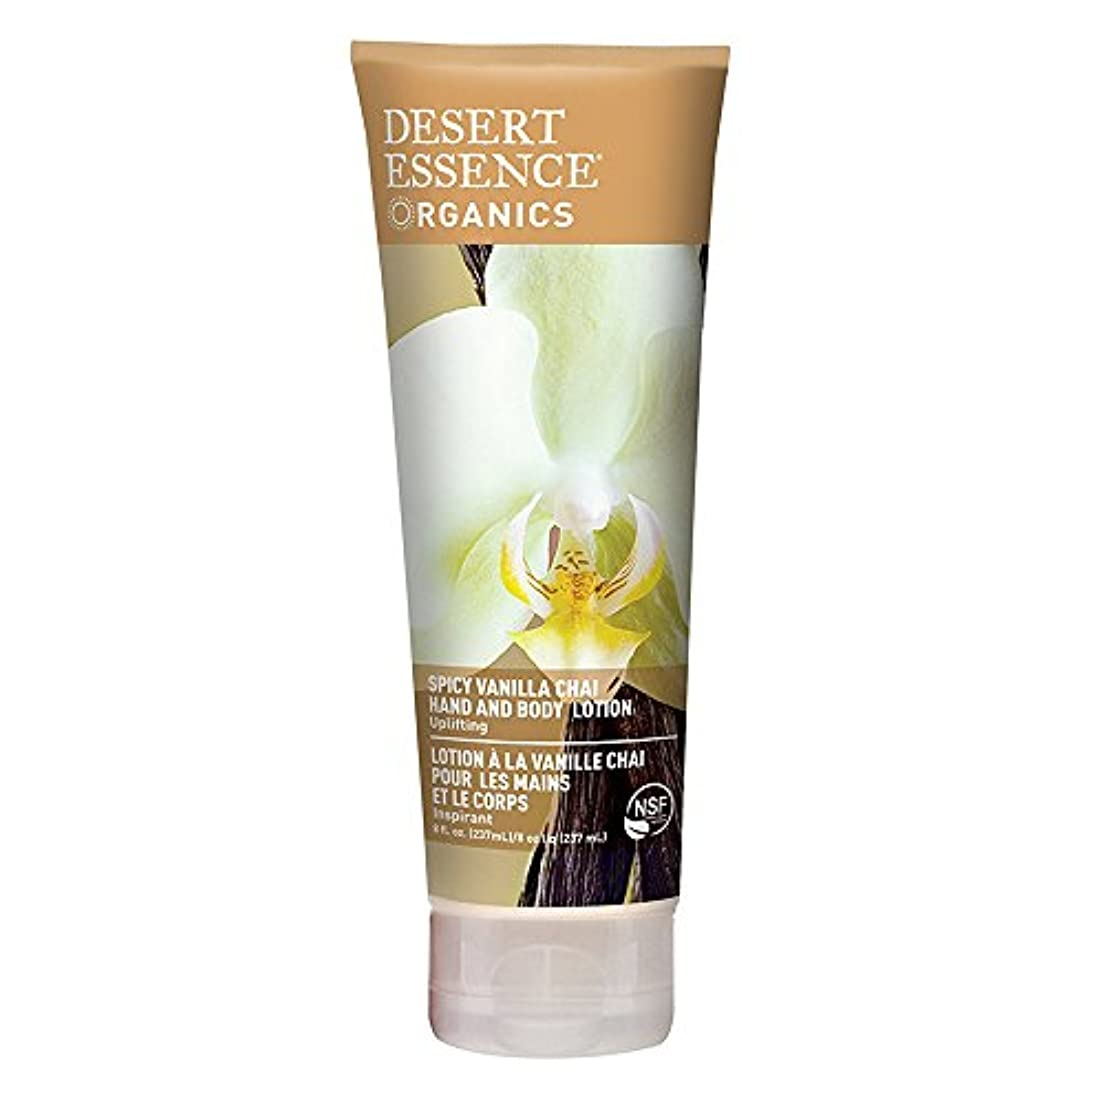 Desert Essence Vanilla Chai Hand & Body Lotion 235 ml (並行輸入品)